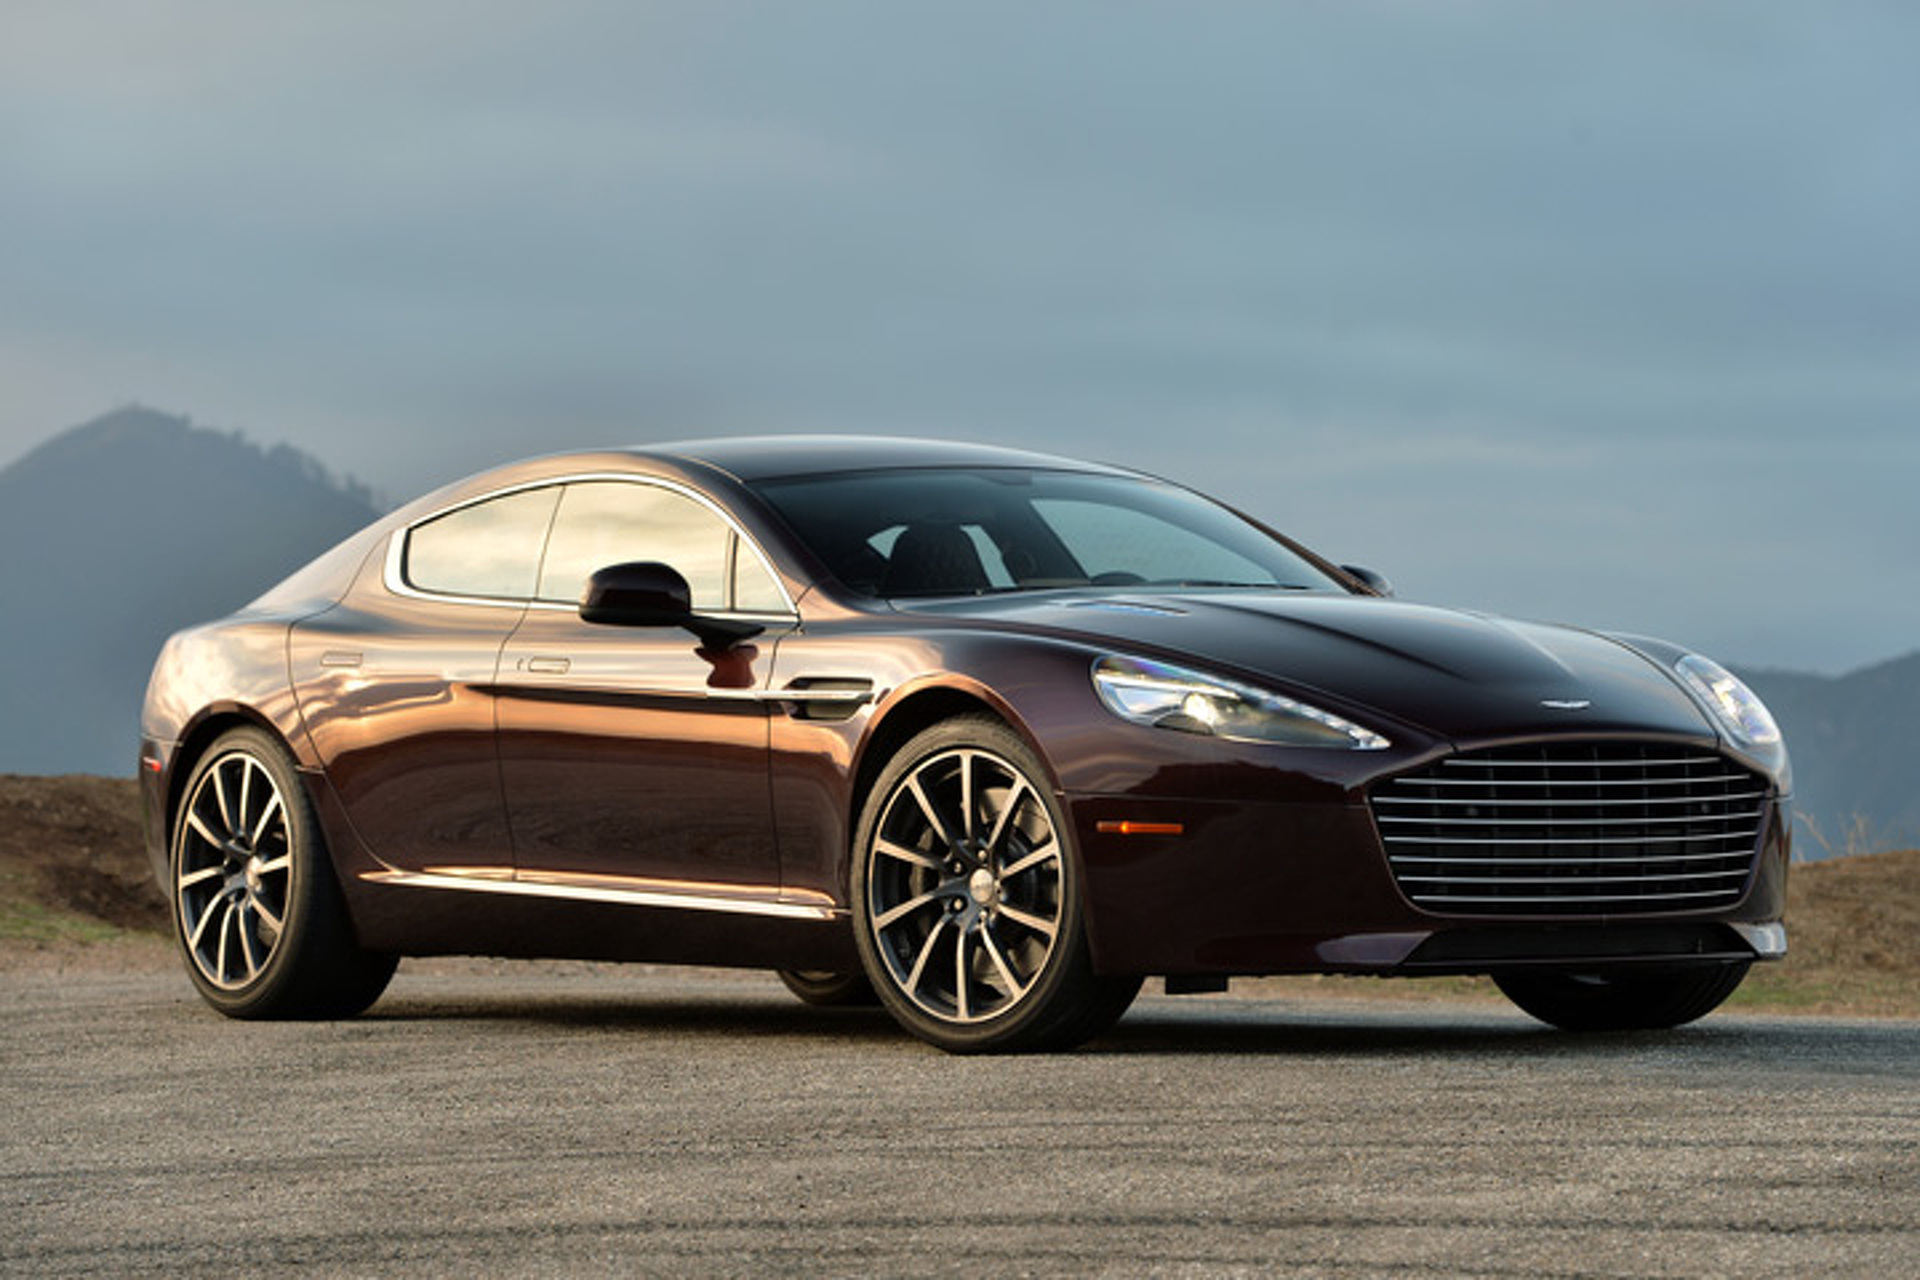 The Future Could Yield 1,000HP Aston Martin Hybrids